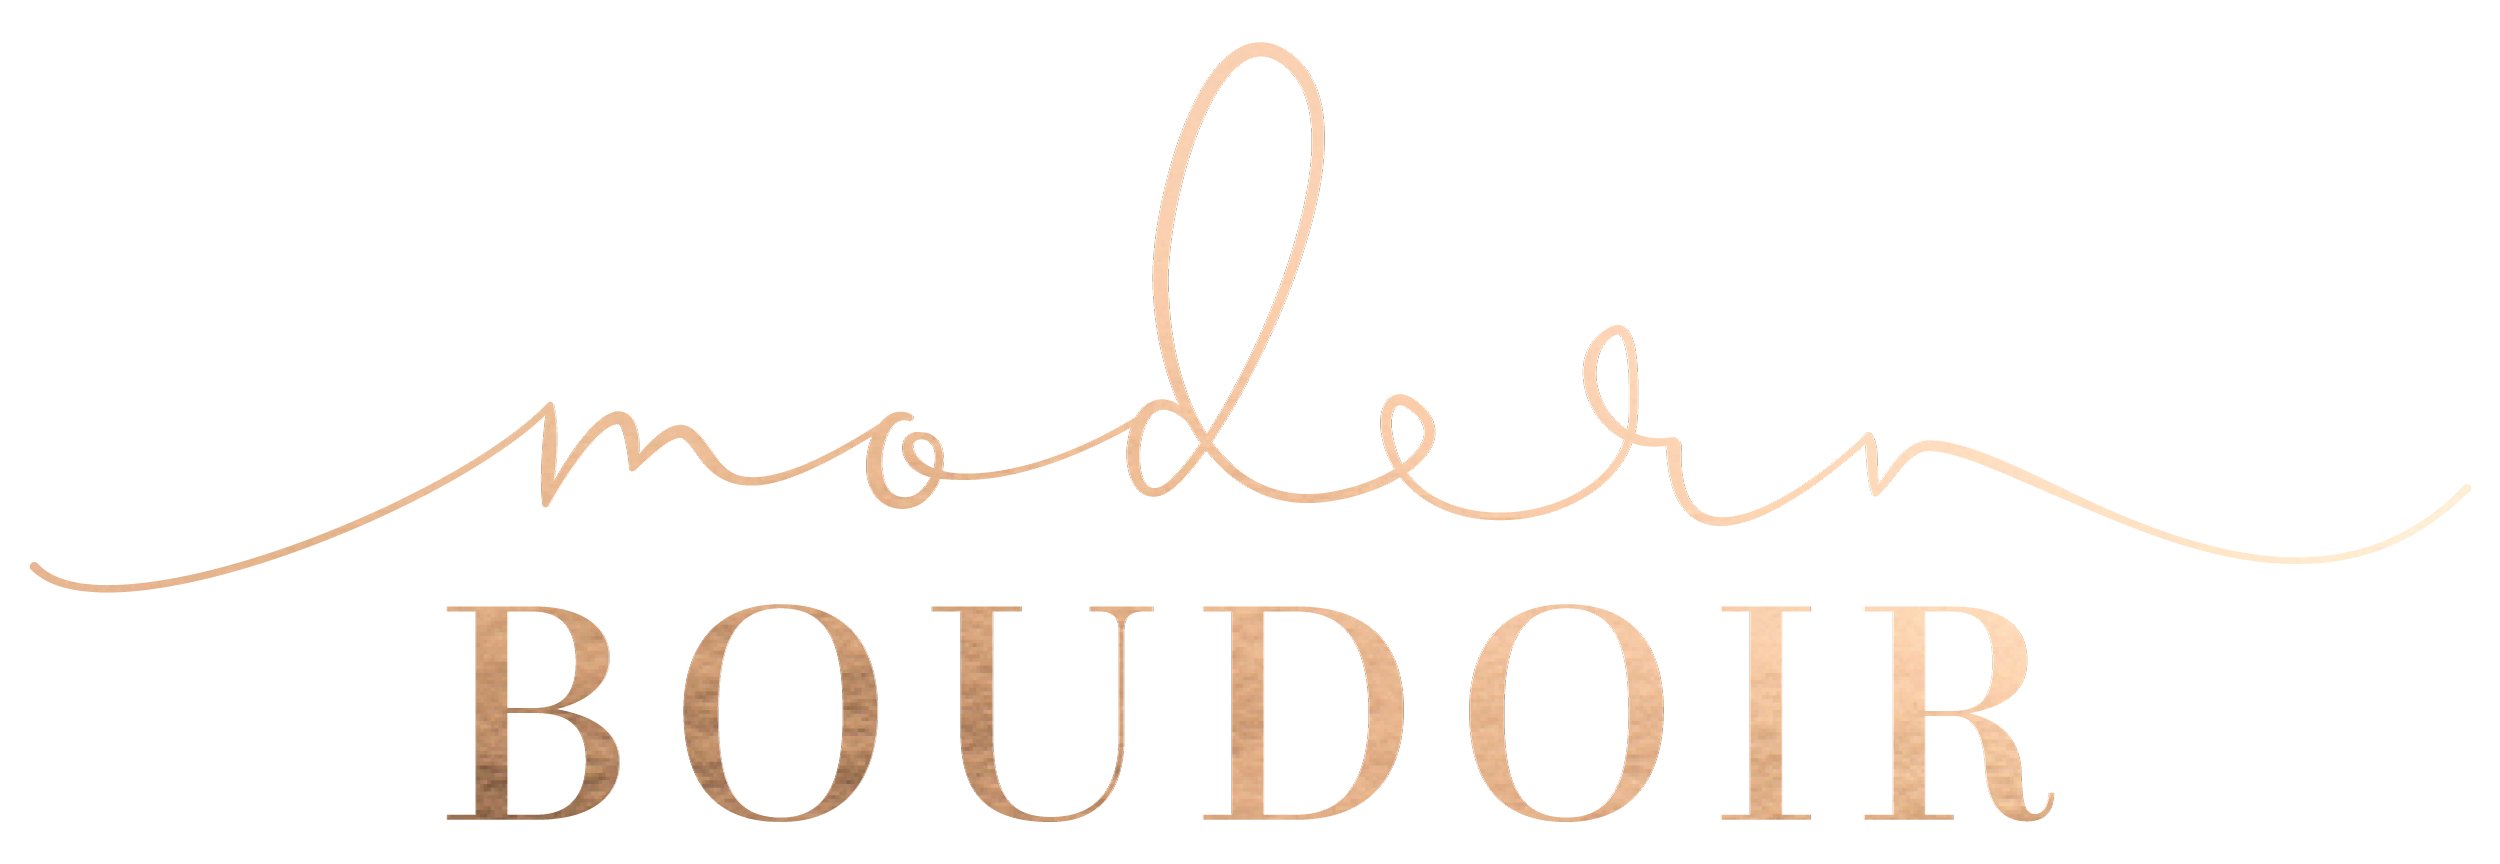 Modern Boudoir - Iowa boudoir photography for all women